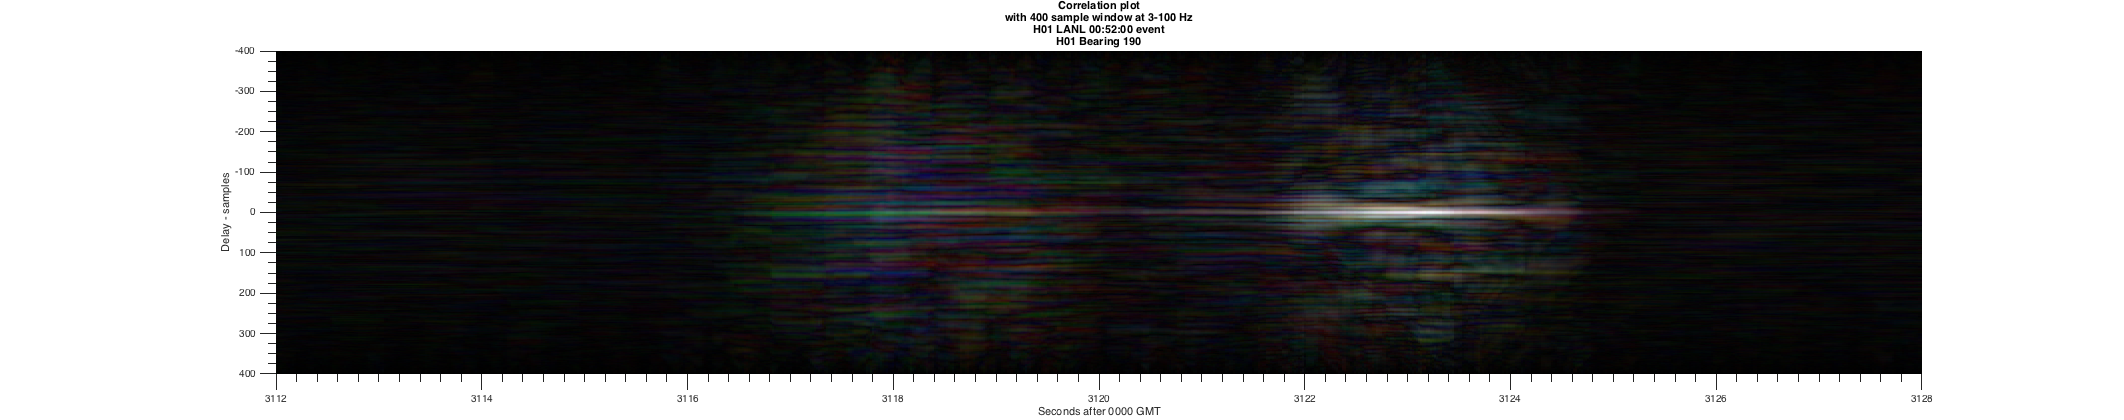 LANL-0052-Correlation-Plot-bearing190-window400